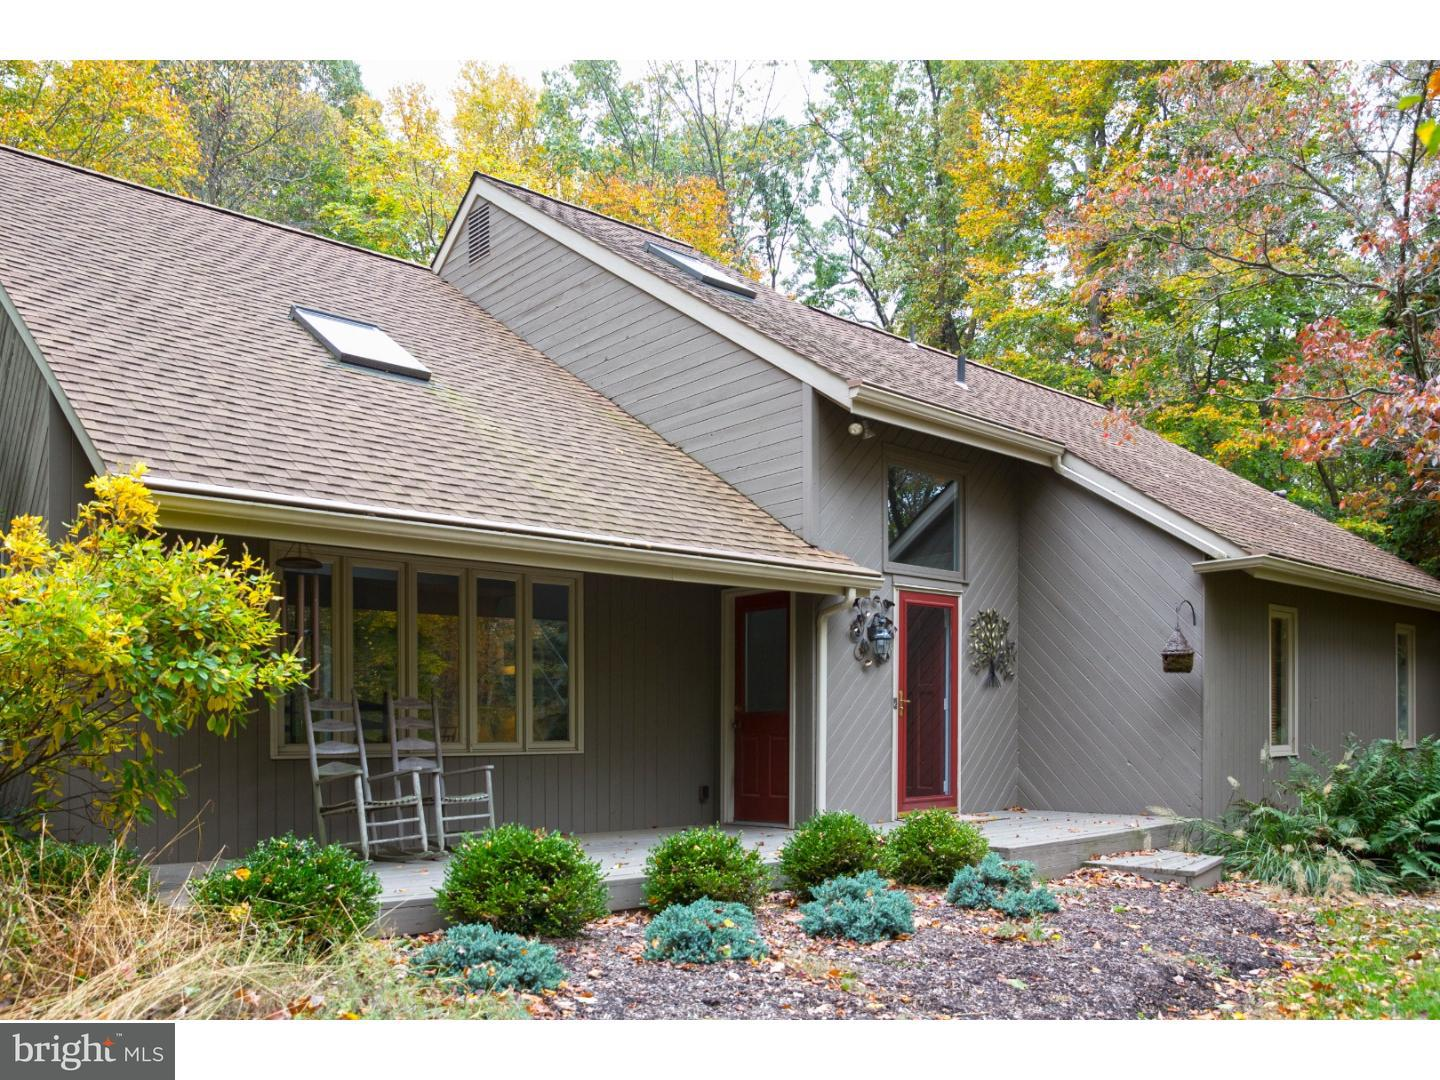 6026 HIDDEN VALLEY DR, NEW HOPE, PA